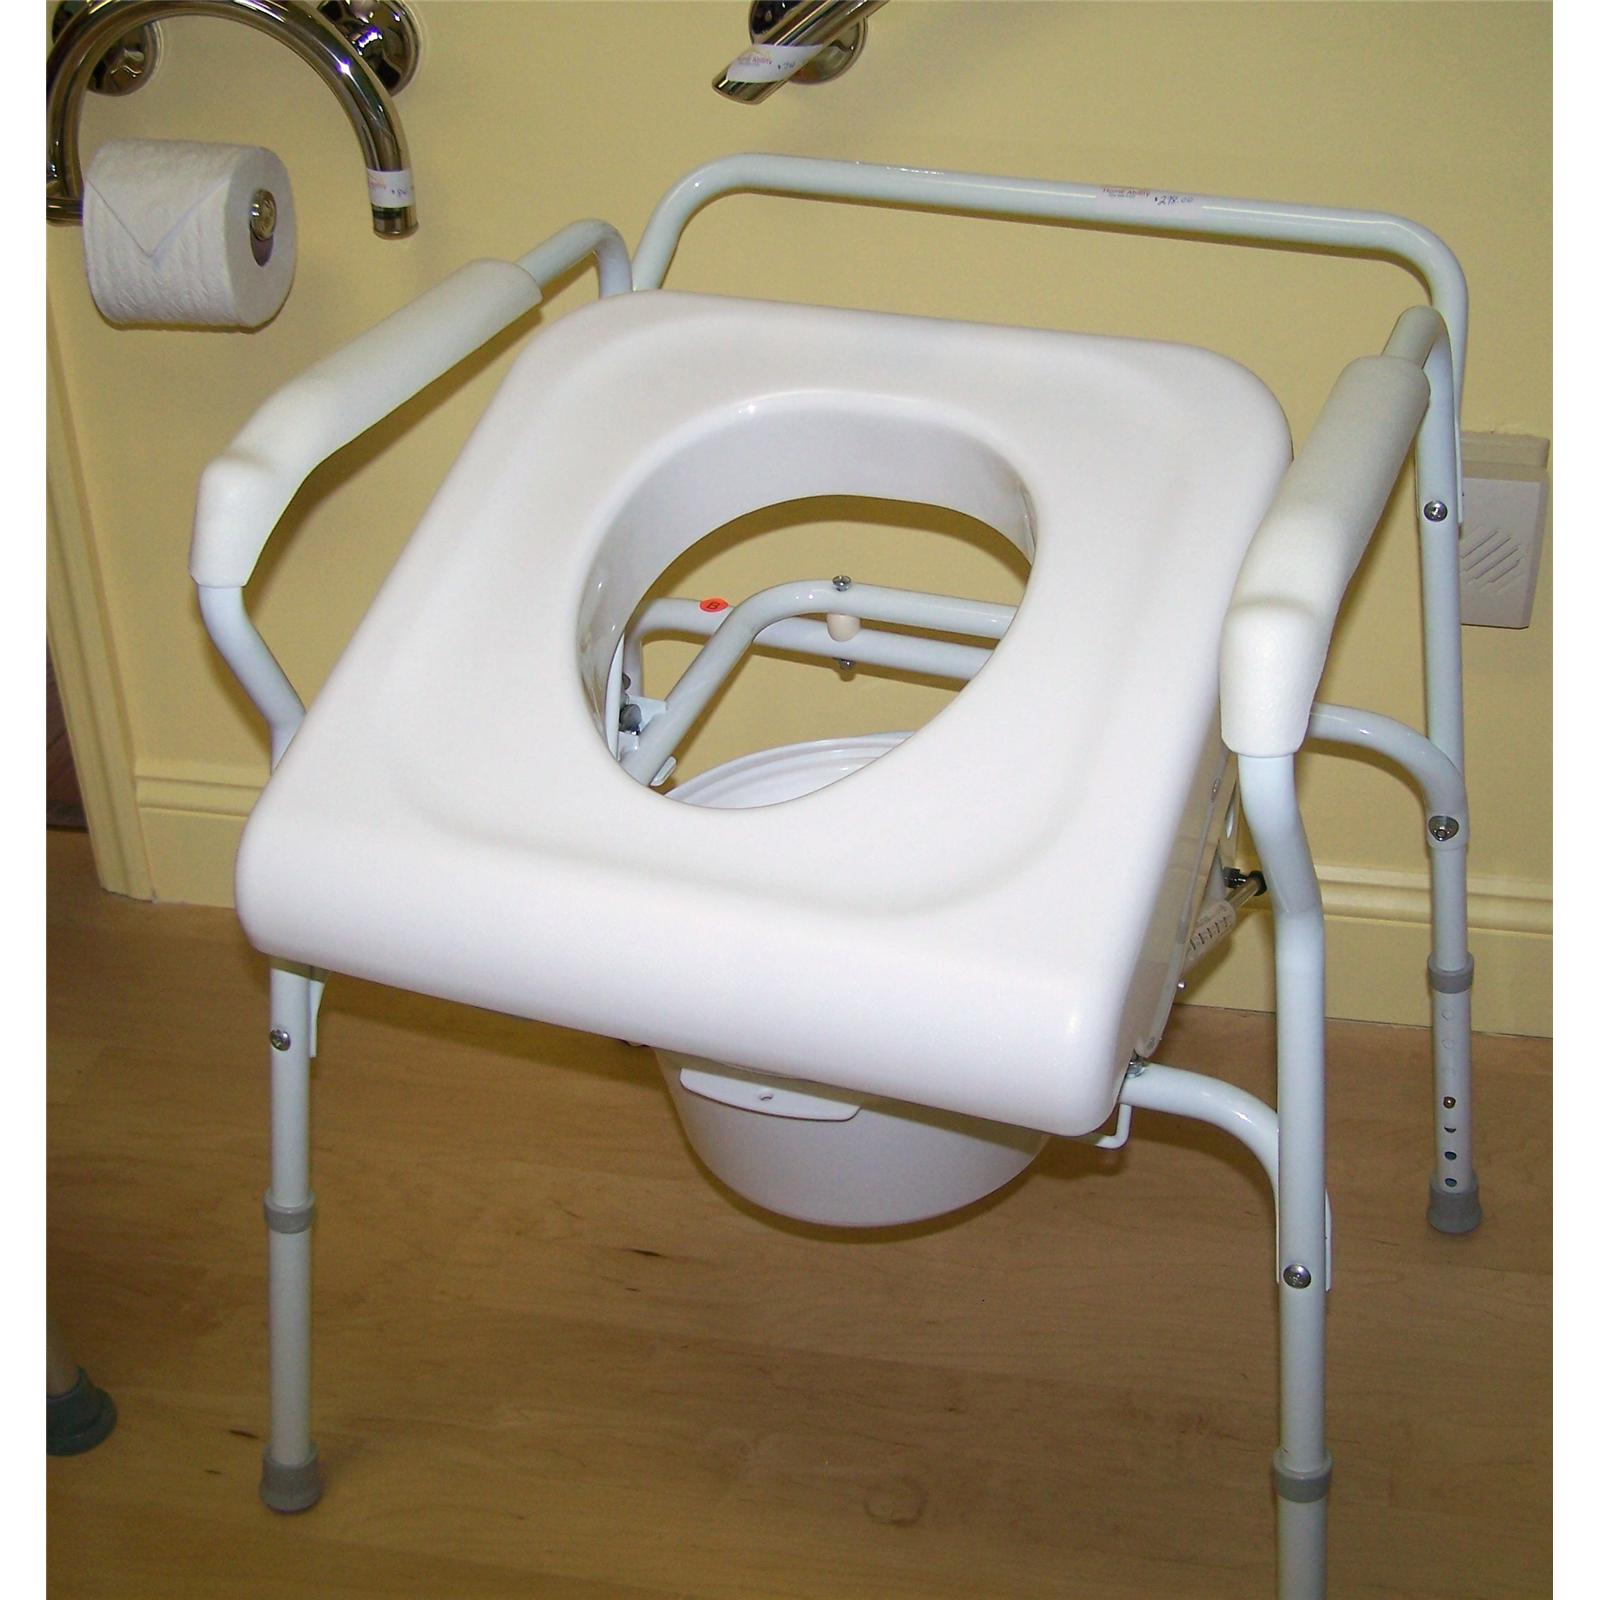 Commode or over Toilet Lift Seat for sale in Jacksonville, FL ...